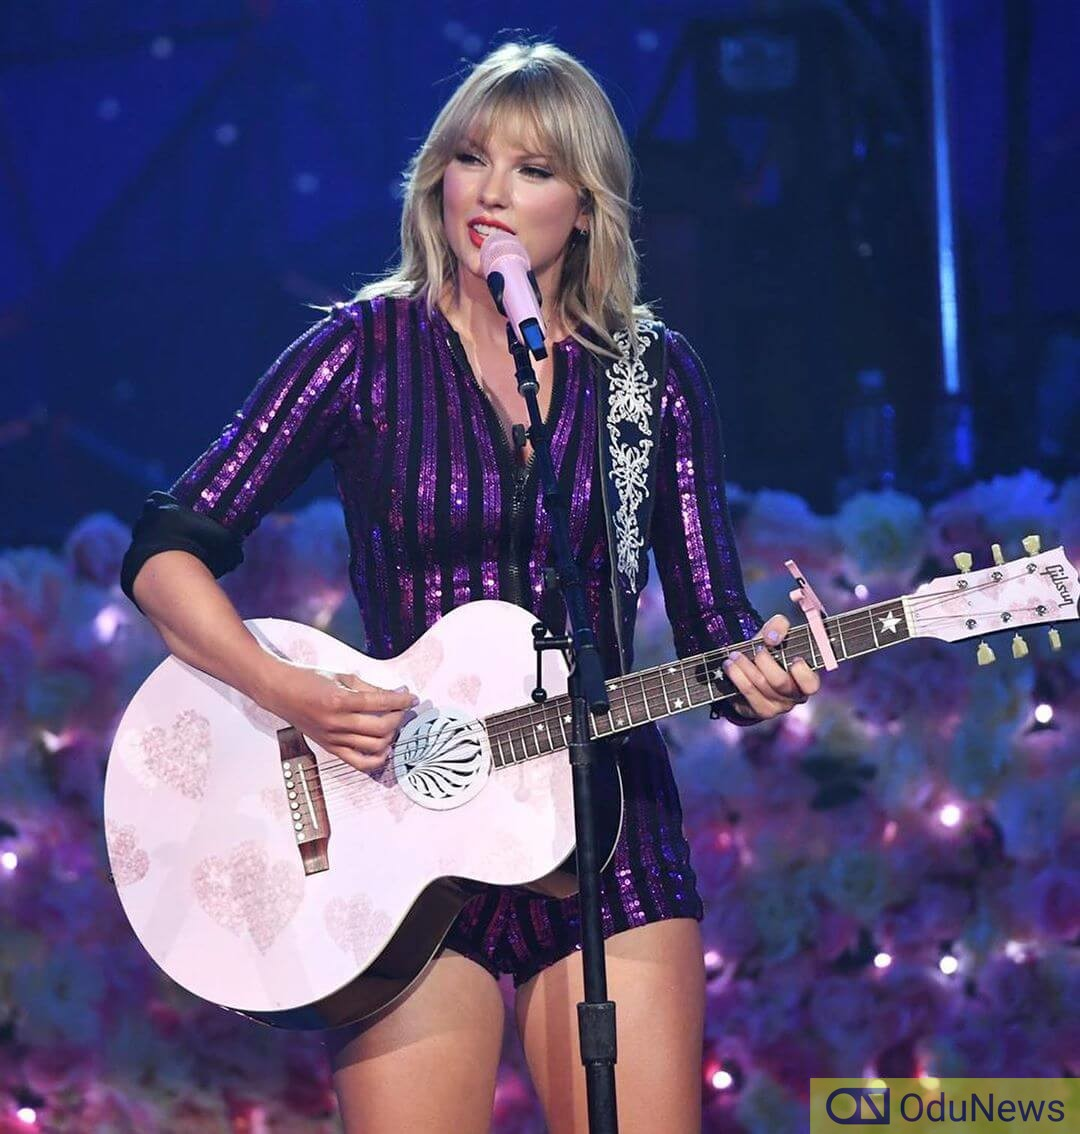 Taylor Swift was named the Artist of the Decade last year